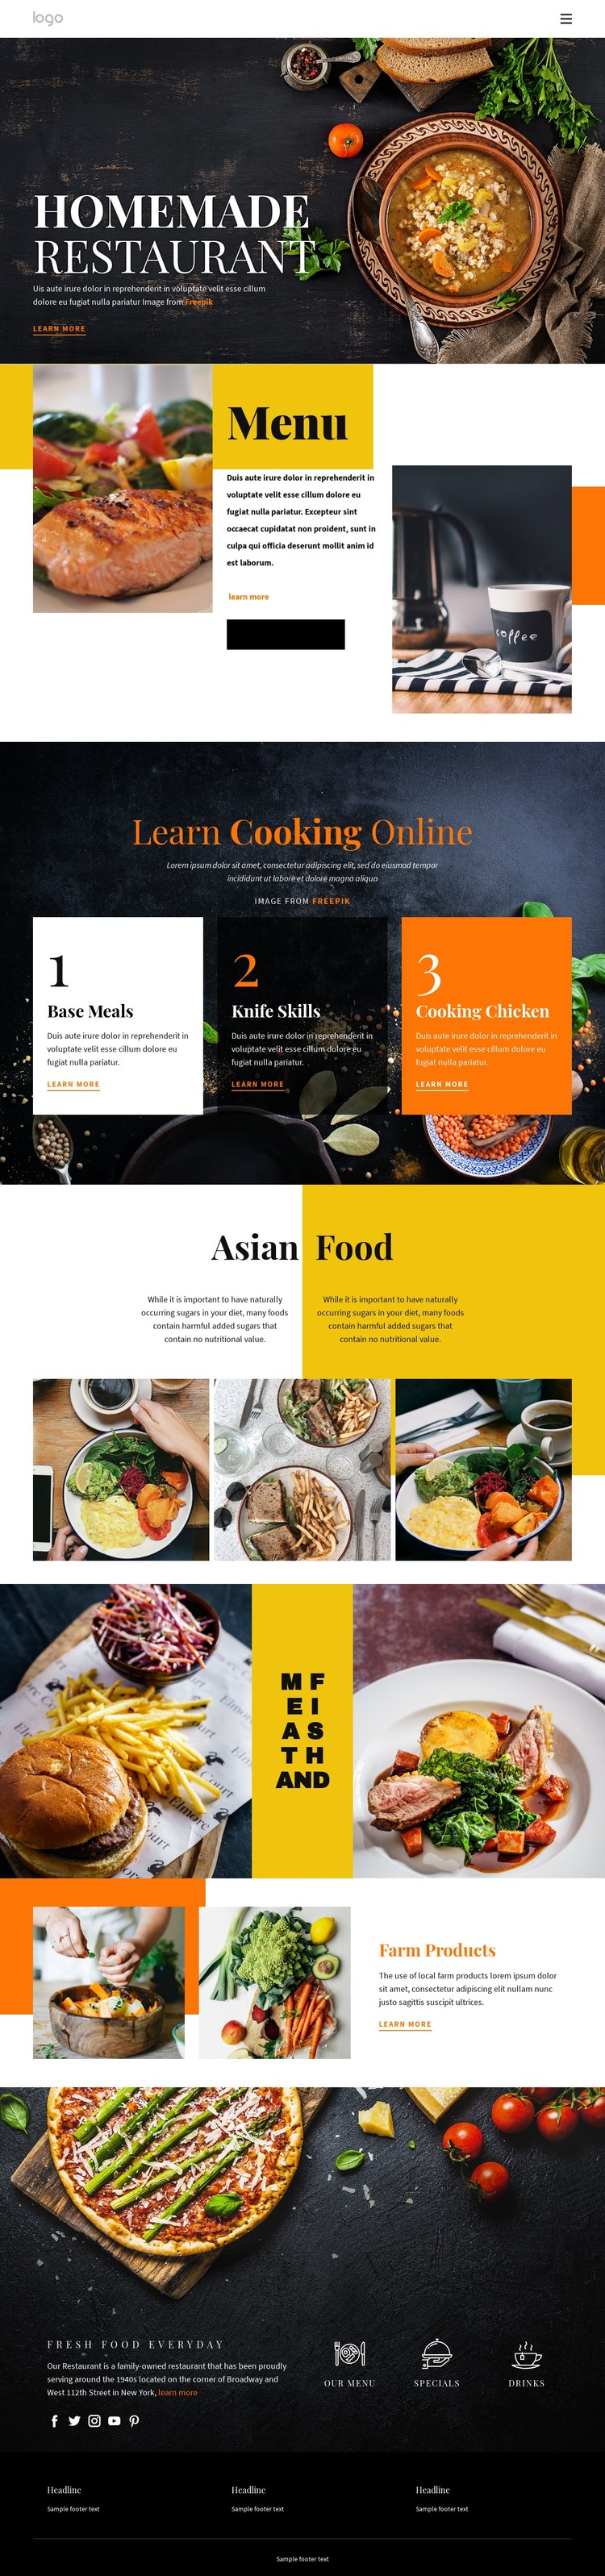 Better than home food Static Site Generator